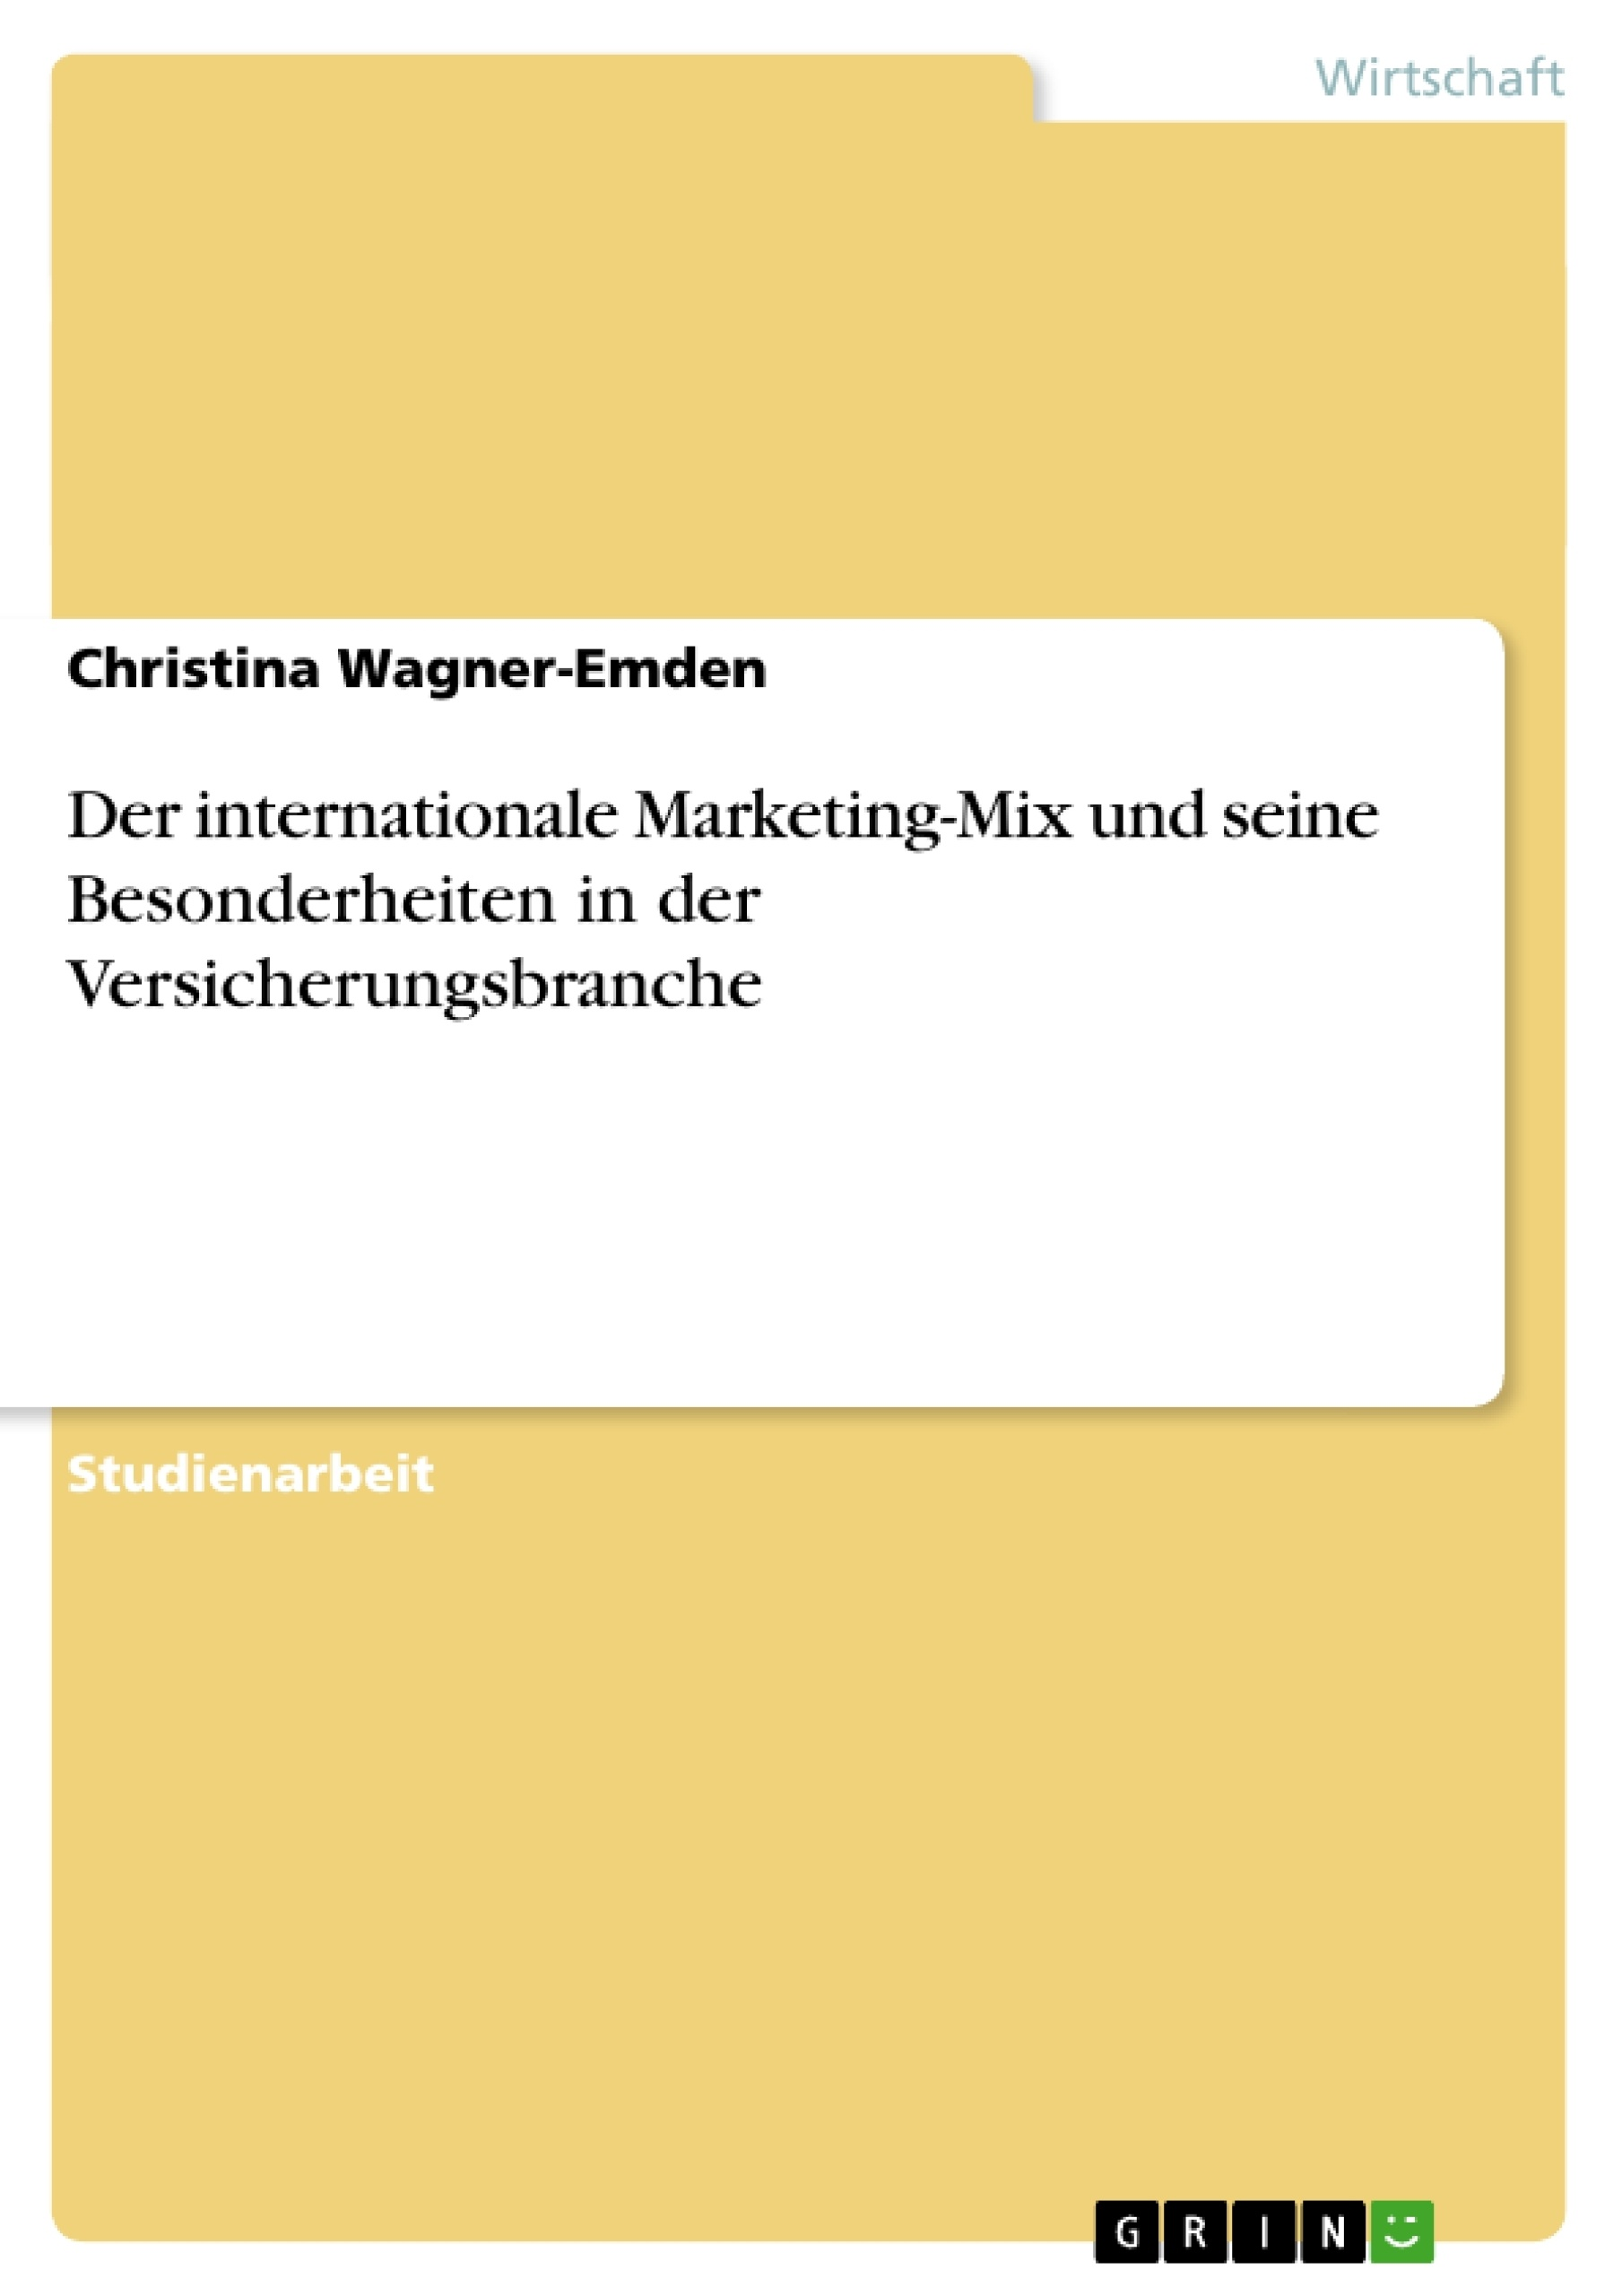 Titel: Der internationale Marketing-Mix und seine Besonderheiten in der Versicherungsbranche